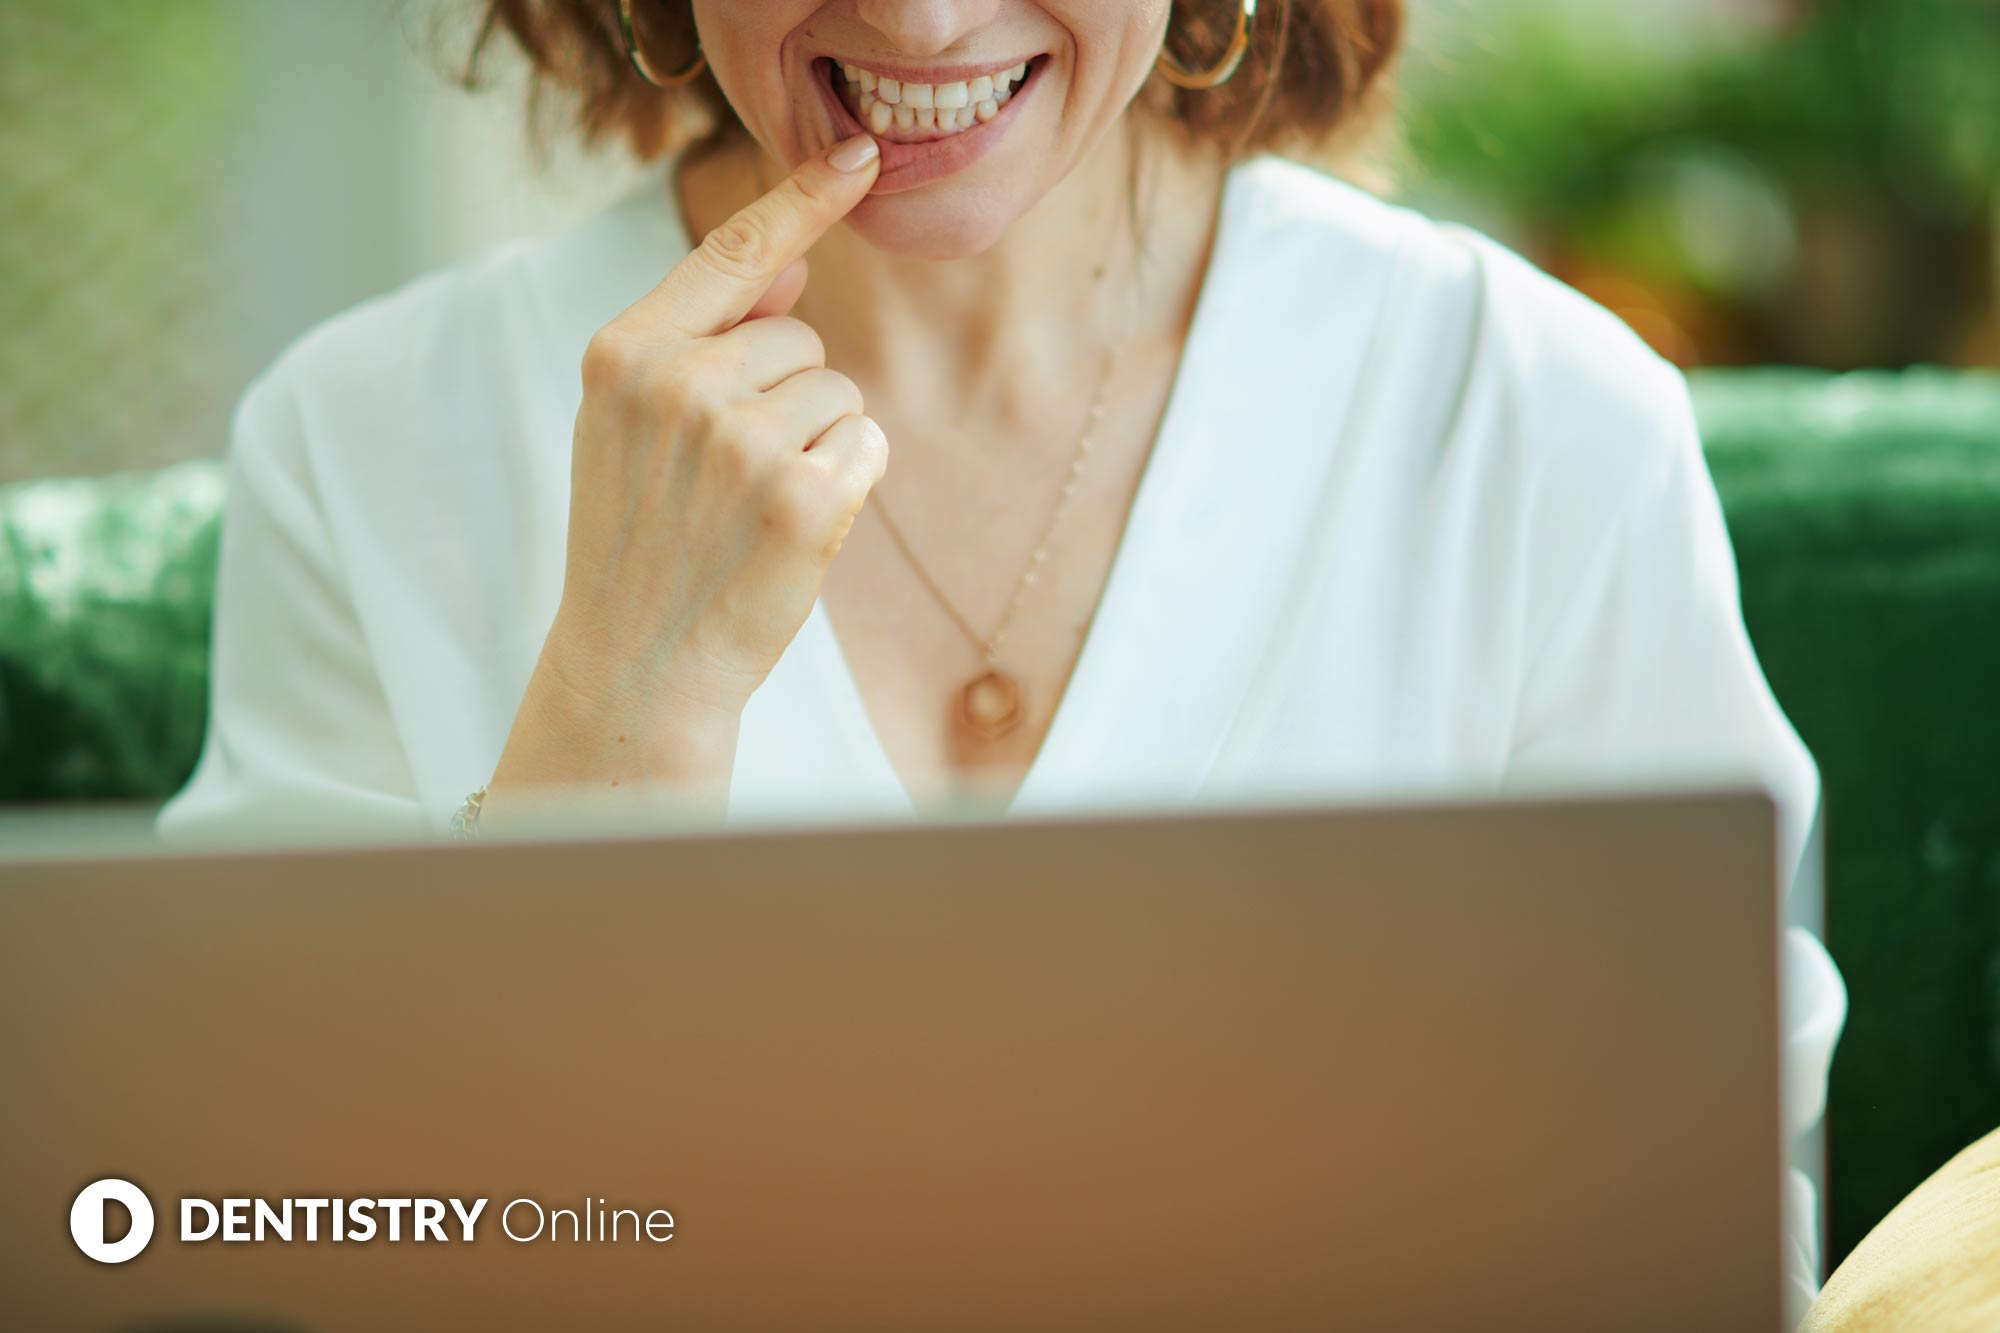 Half of dentists report difficulty obtaining patient consent during remote consultations